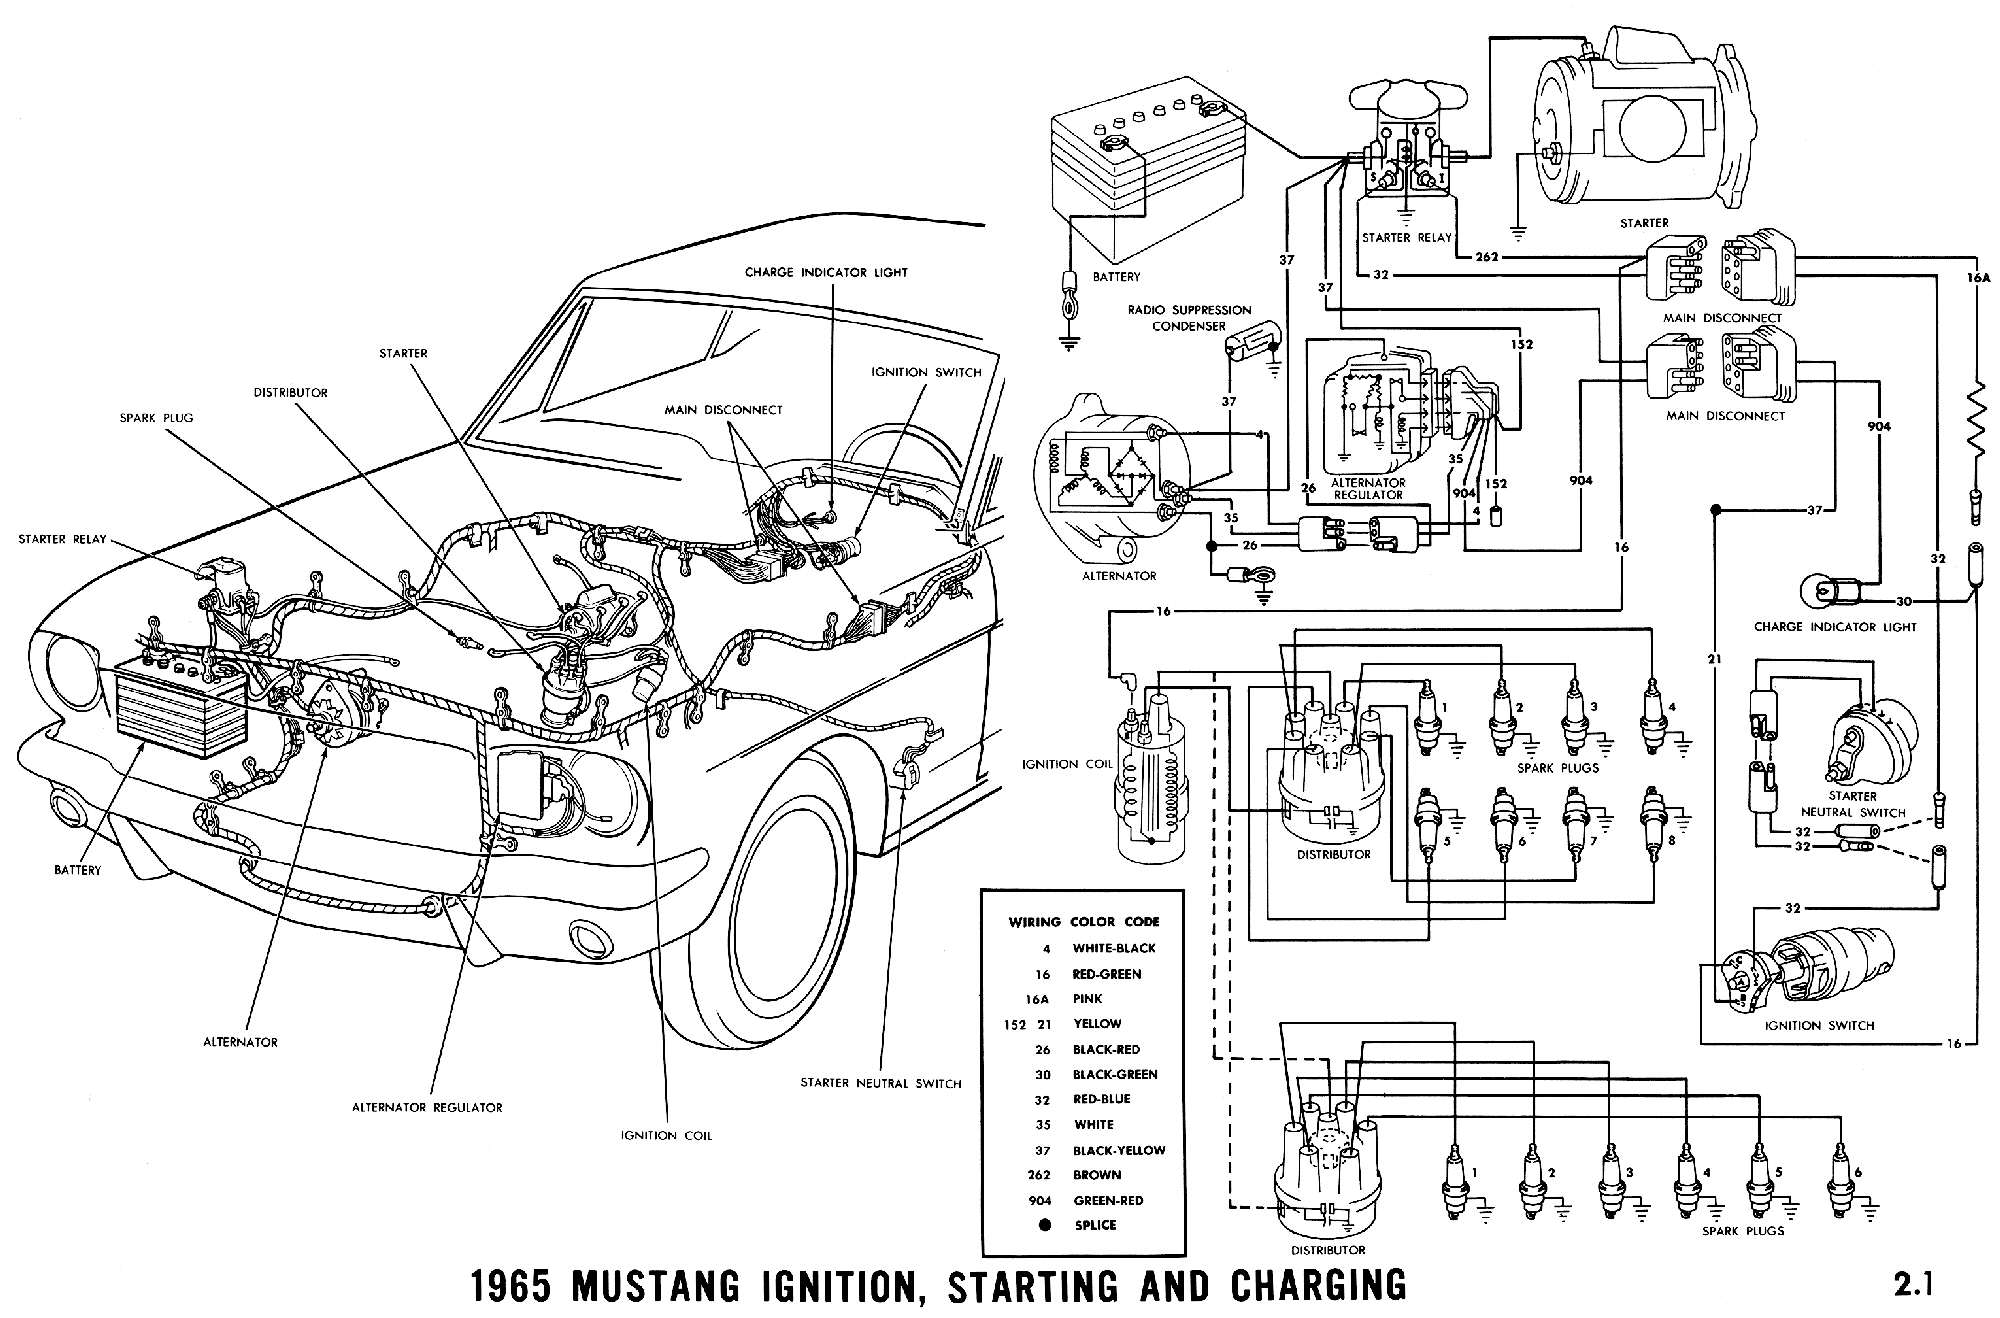 1965 mustang color wiring diagram example electrical wiring diagram u2022 rh cranejapan co 1965 Mustang Fuse Block Diagram 1965 Ford Alternator Wiring Diagram